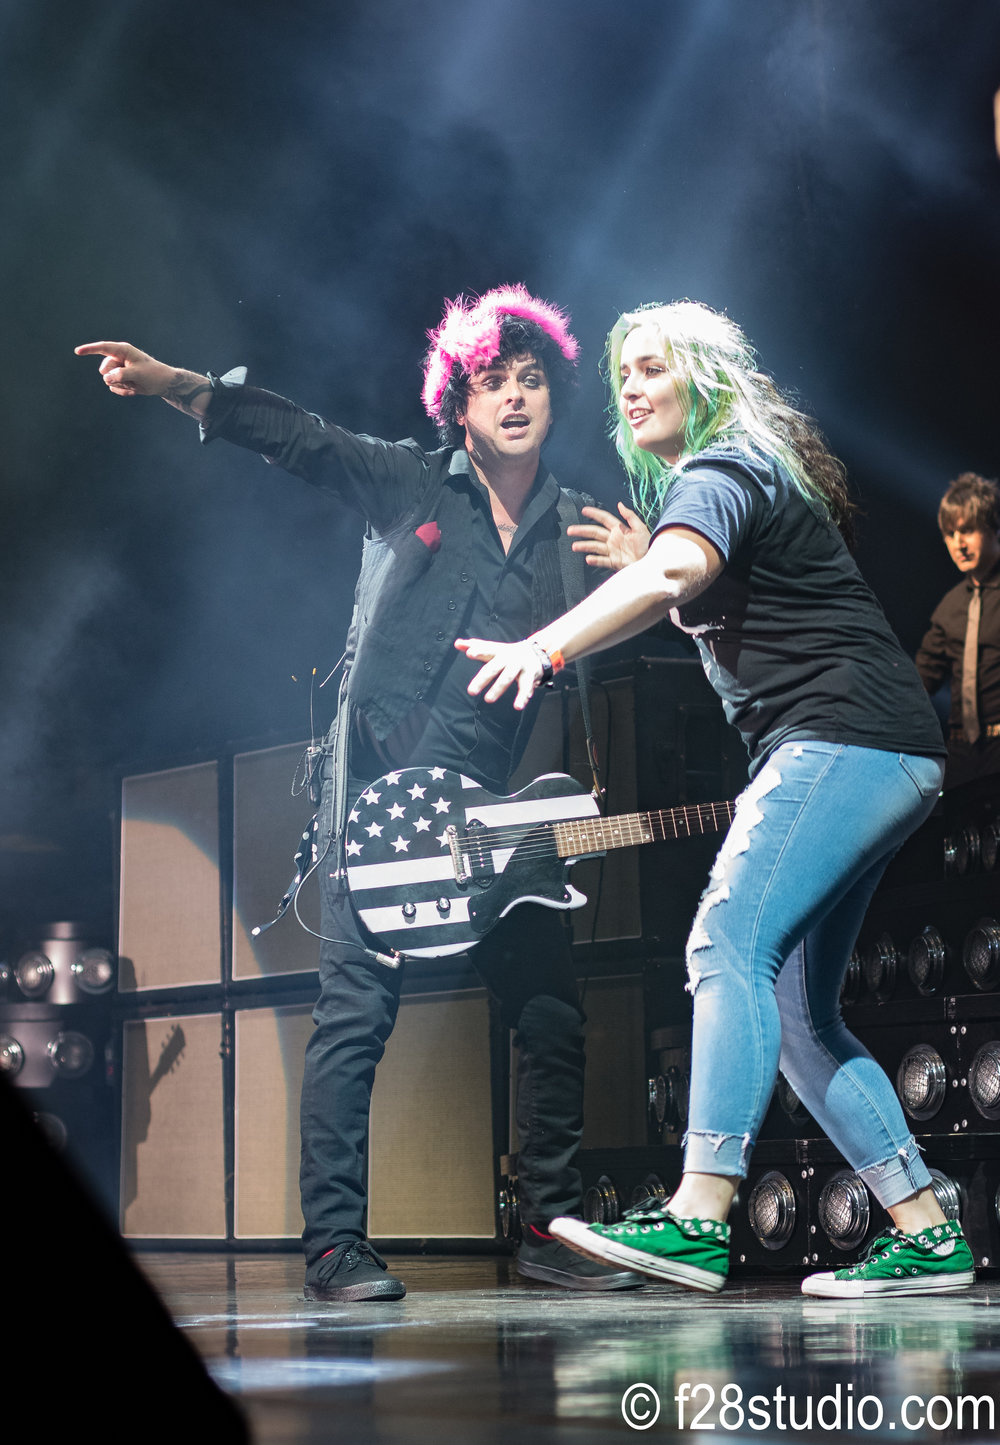 Billie Joe called a fan up to the stage.  She then ran off and stage dived.  They caught her. :)